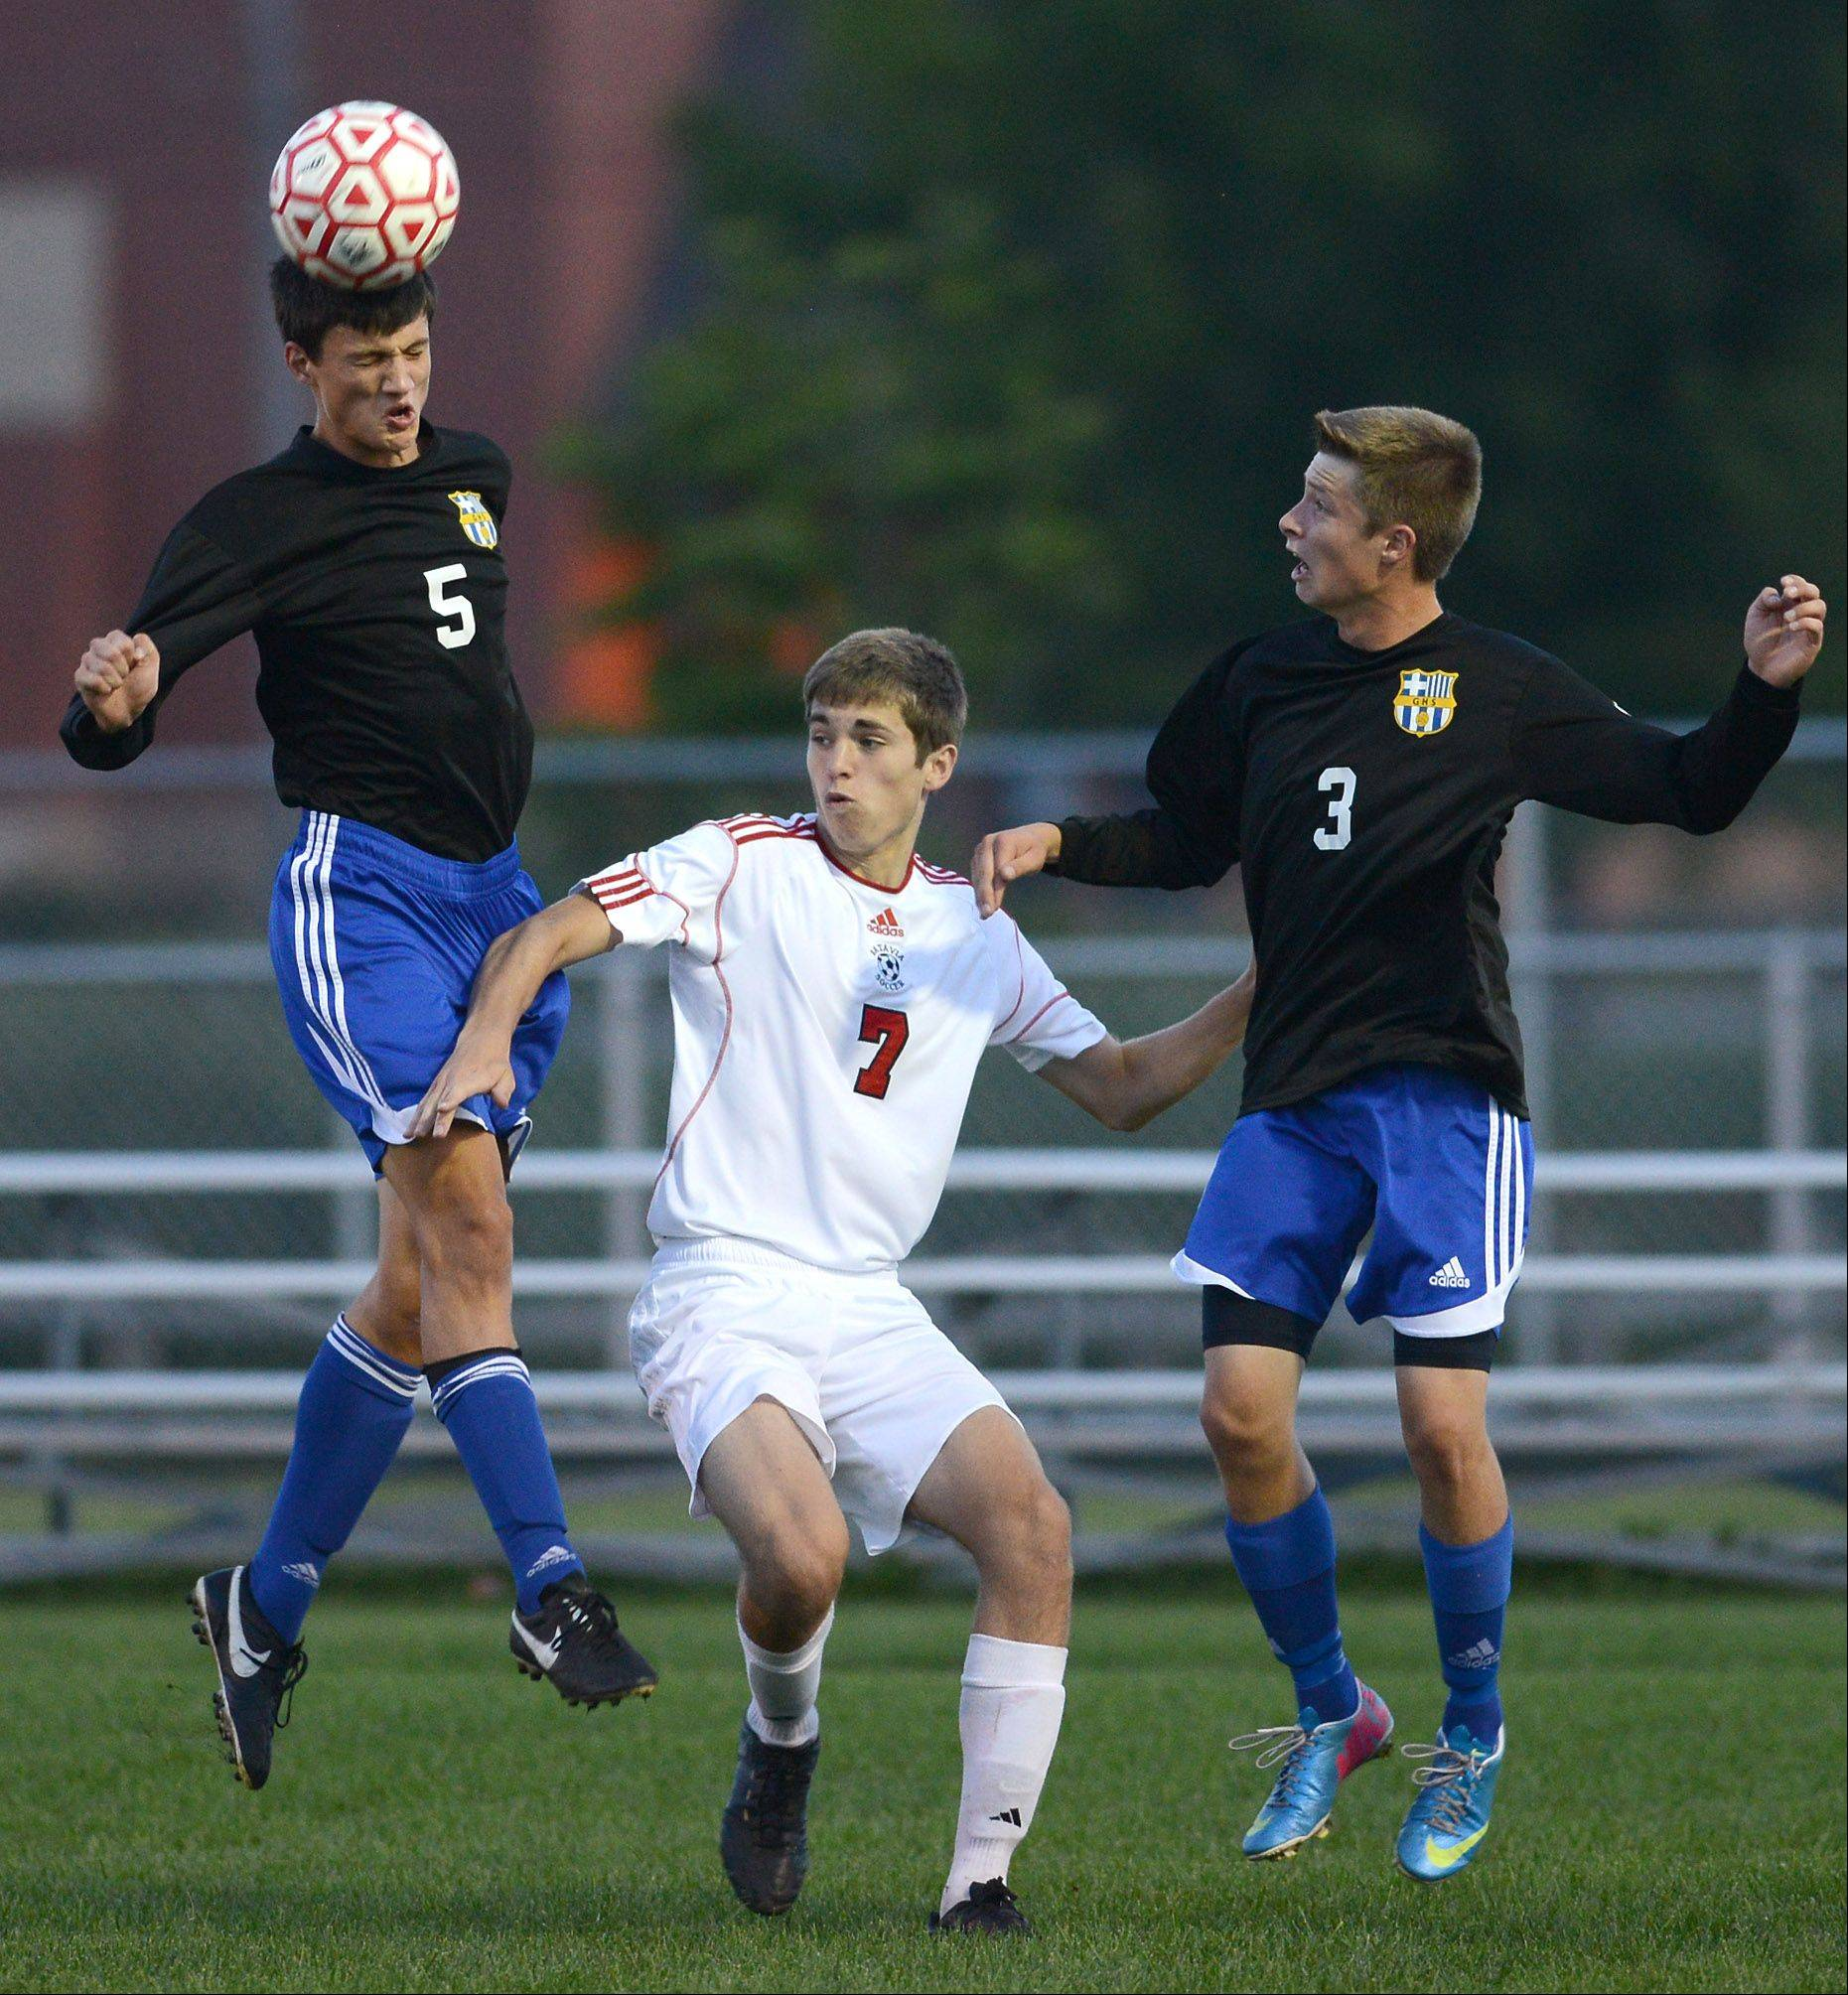 Geneva's Sam Urben (5) wins a header during Thursday's game at Batavia.